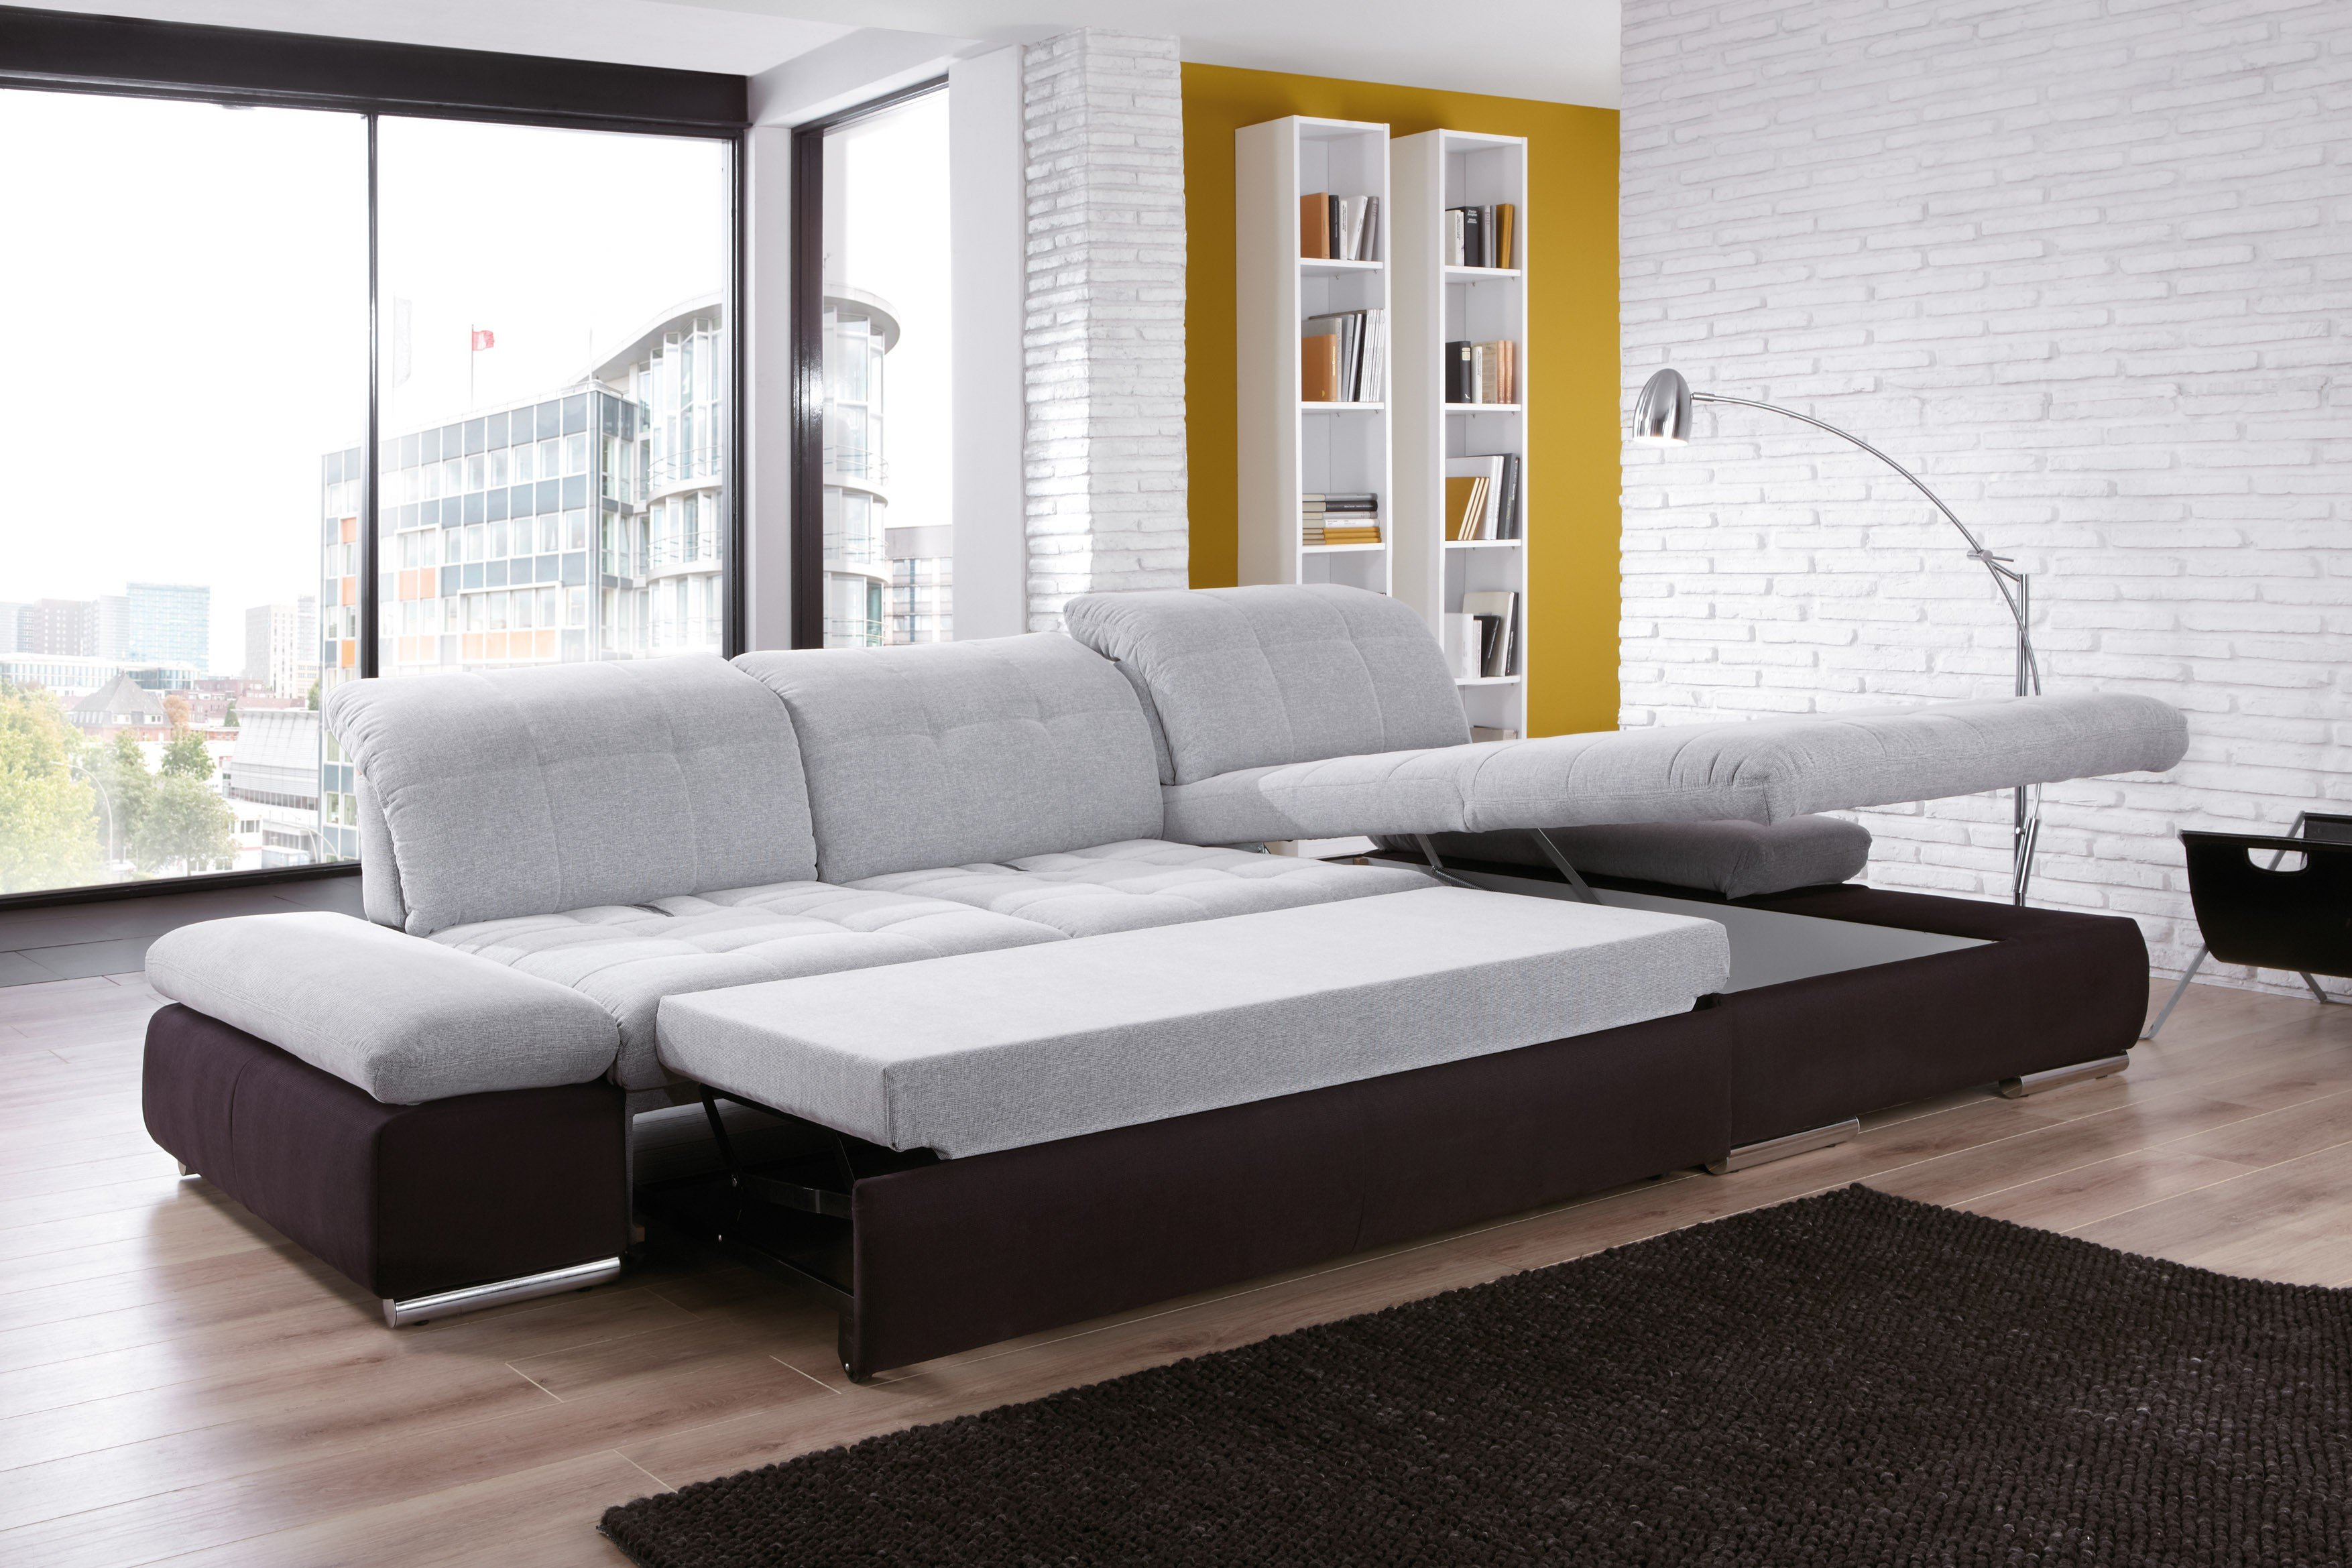 ecksofa santa fe von poco in hellgrau schwarz m bel letz ihr online shop. Black Bedroom Furniture Sets. Home Design Ideas